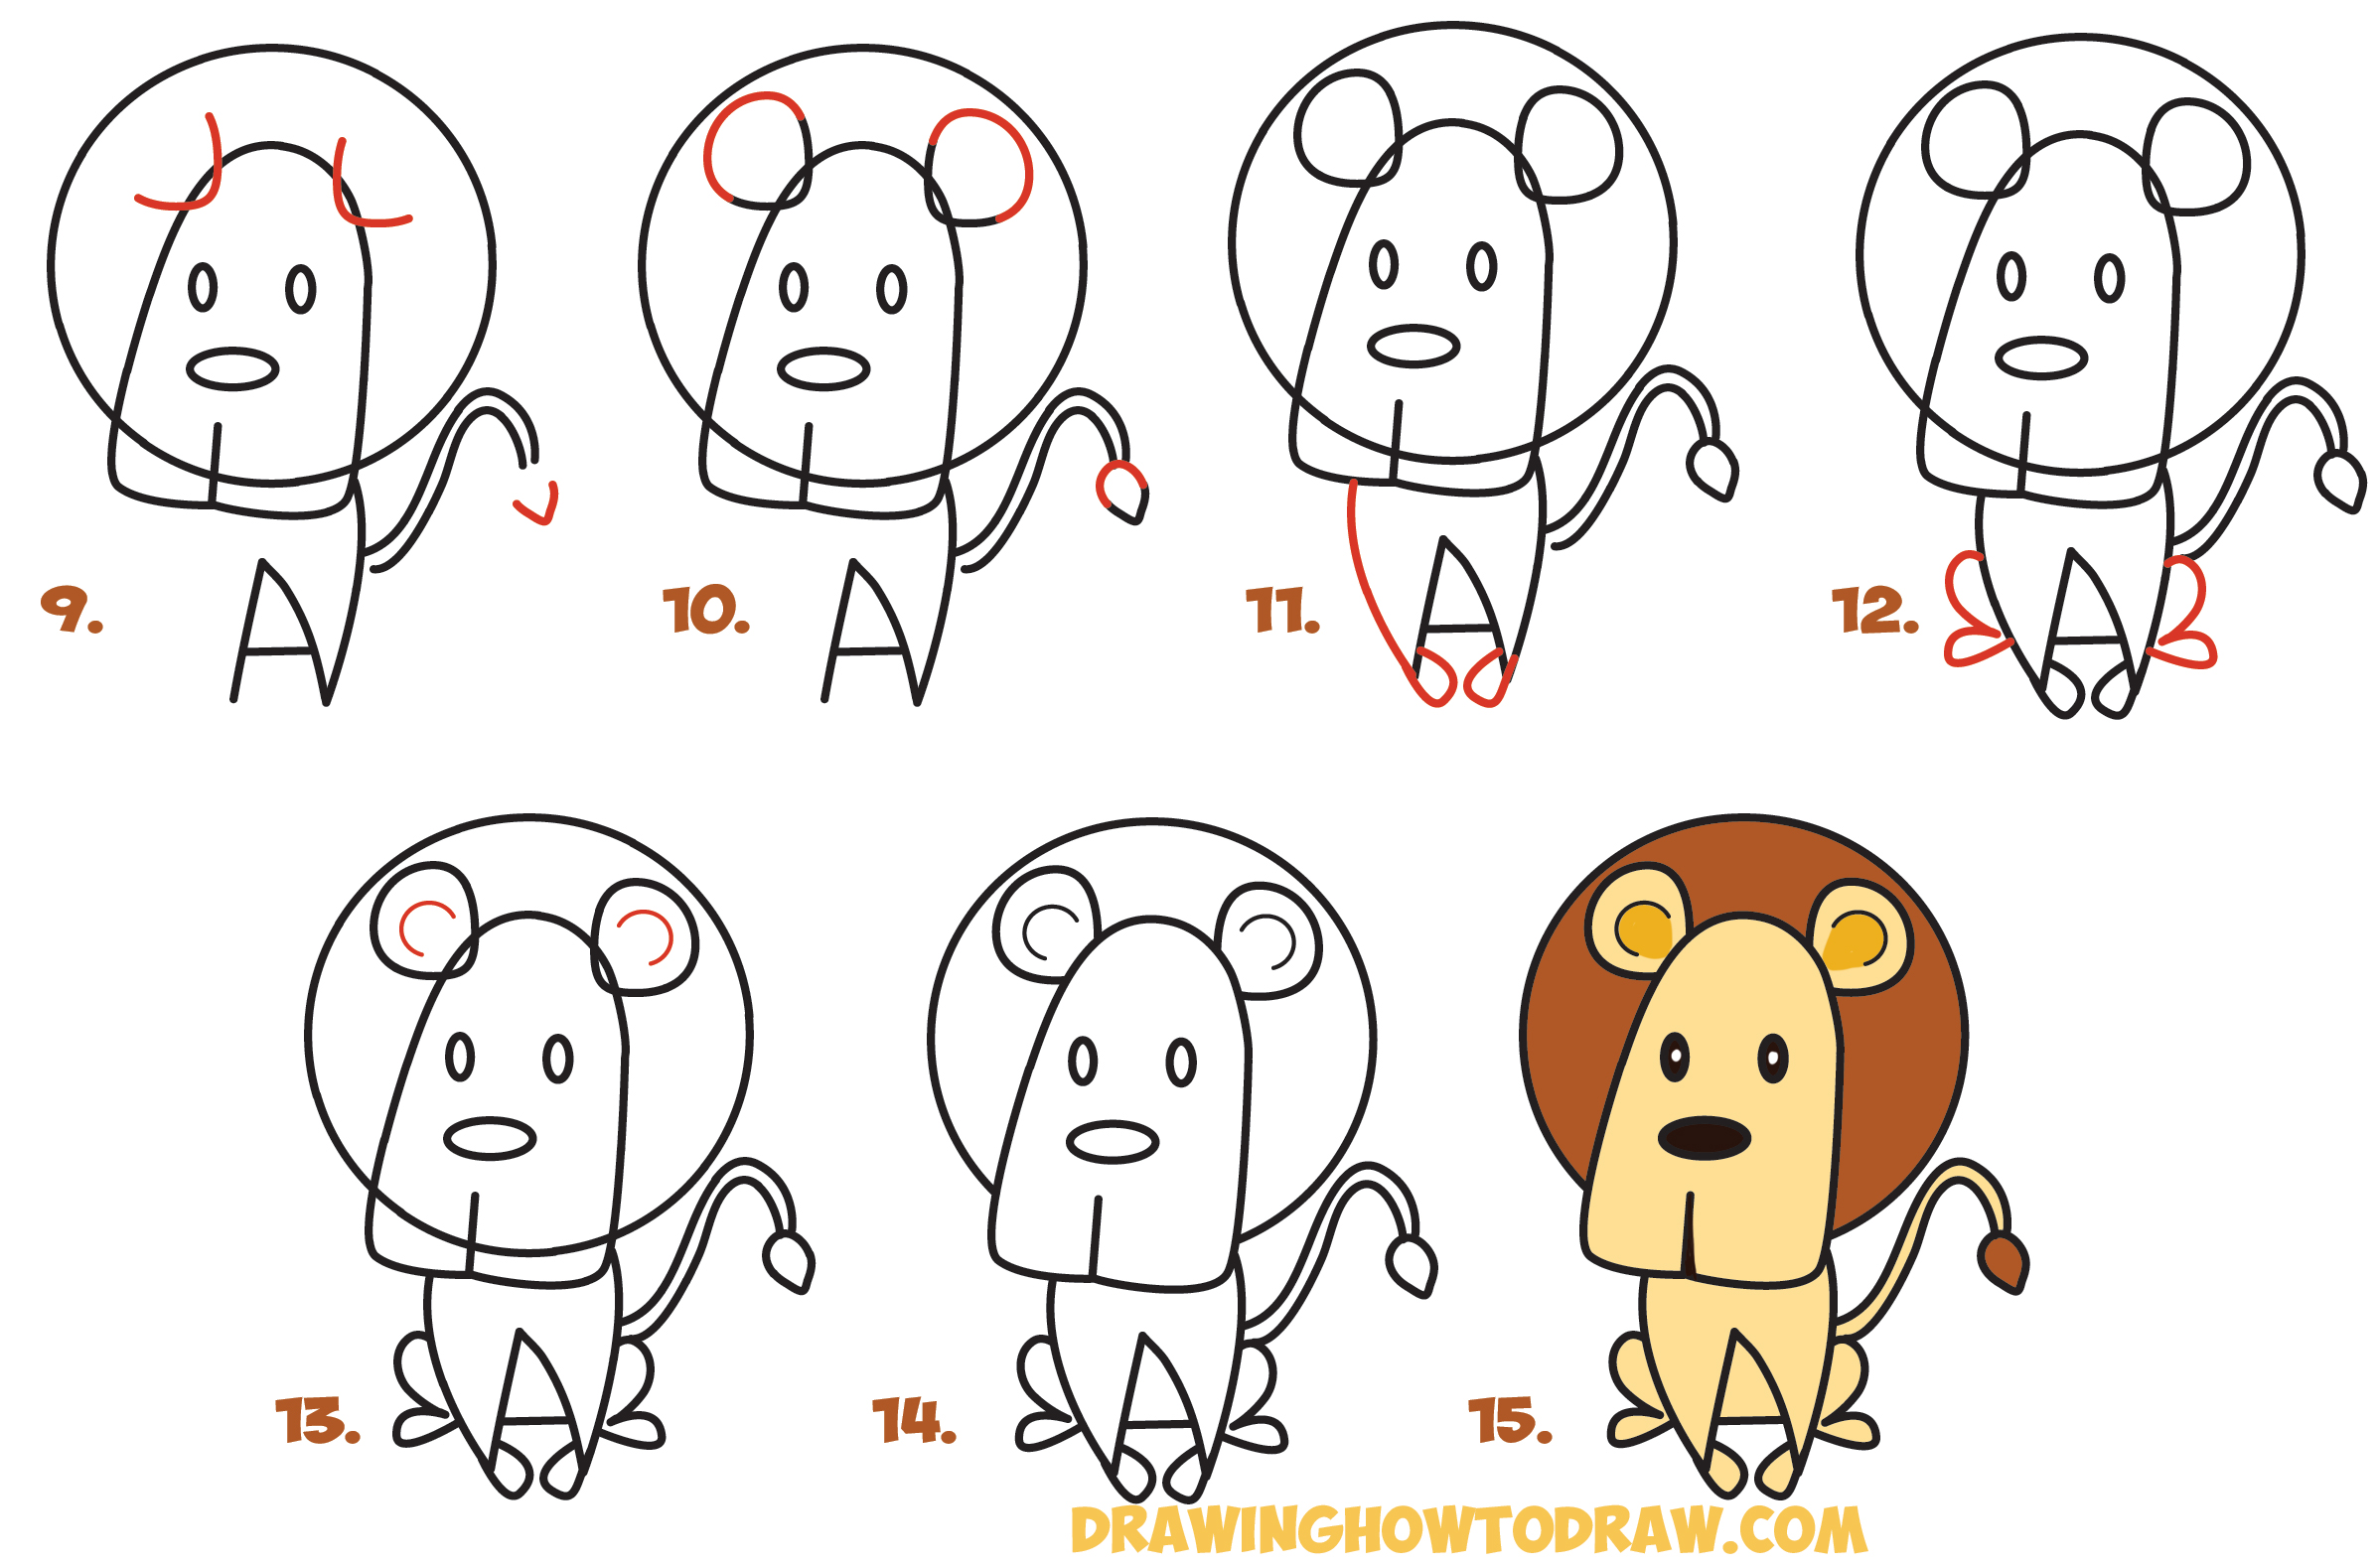 Learn How To Draw Cartoon Lion From The Word Simple Steps Drawing Lesson  For Kids